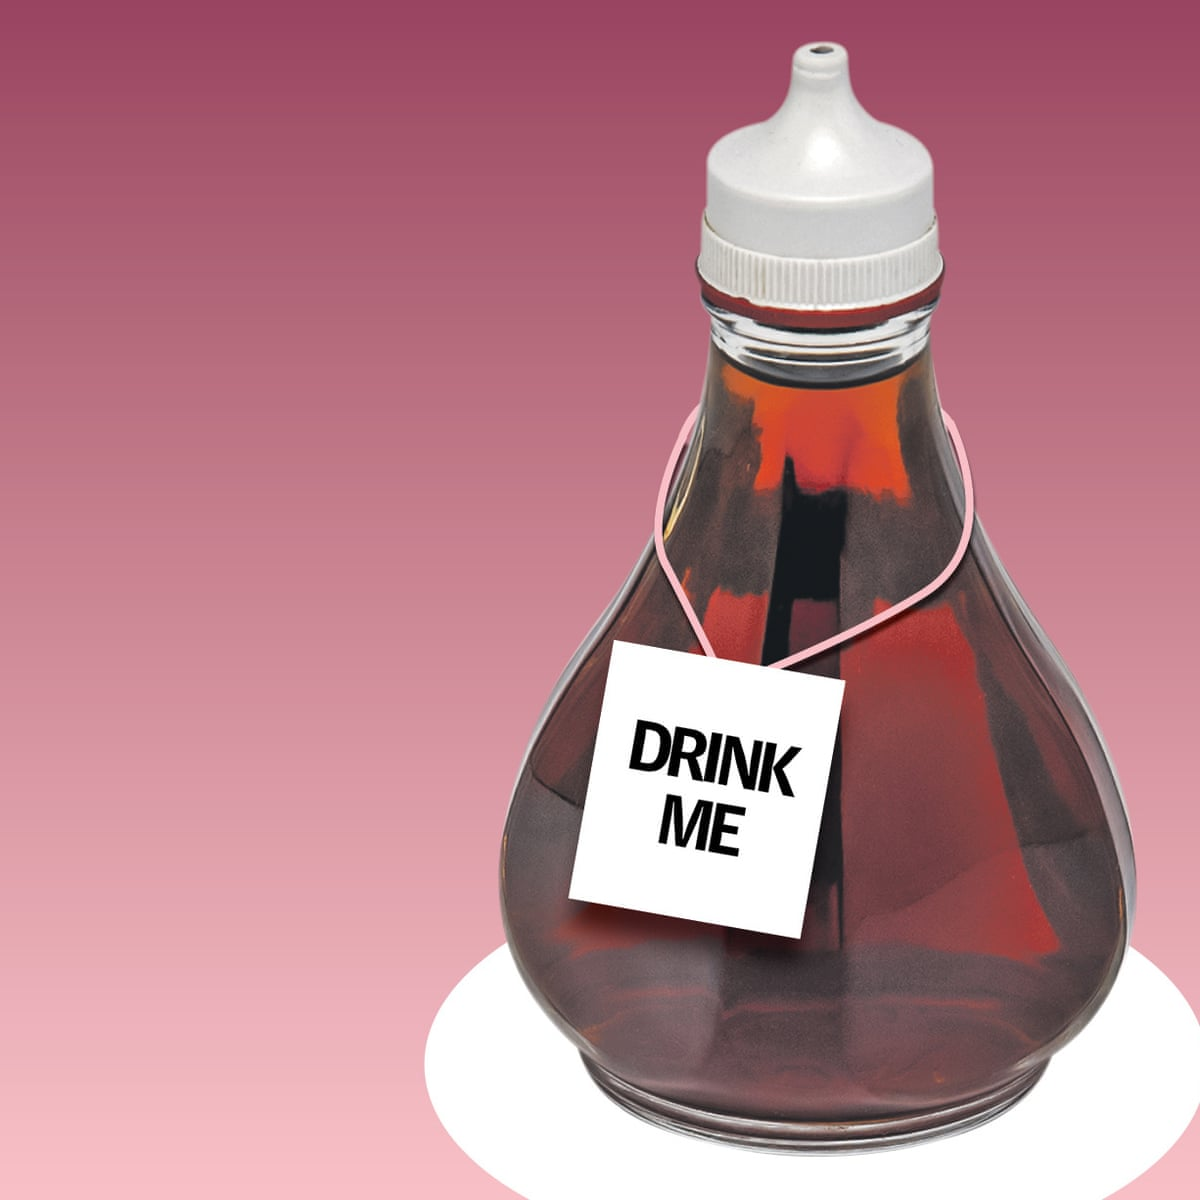 Vinegar Is The Latest Health Drink Phenomenon But Does It Strike A Sour Note Soft Drinks The Guardian